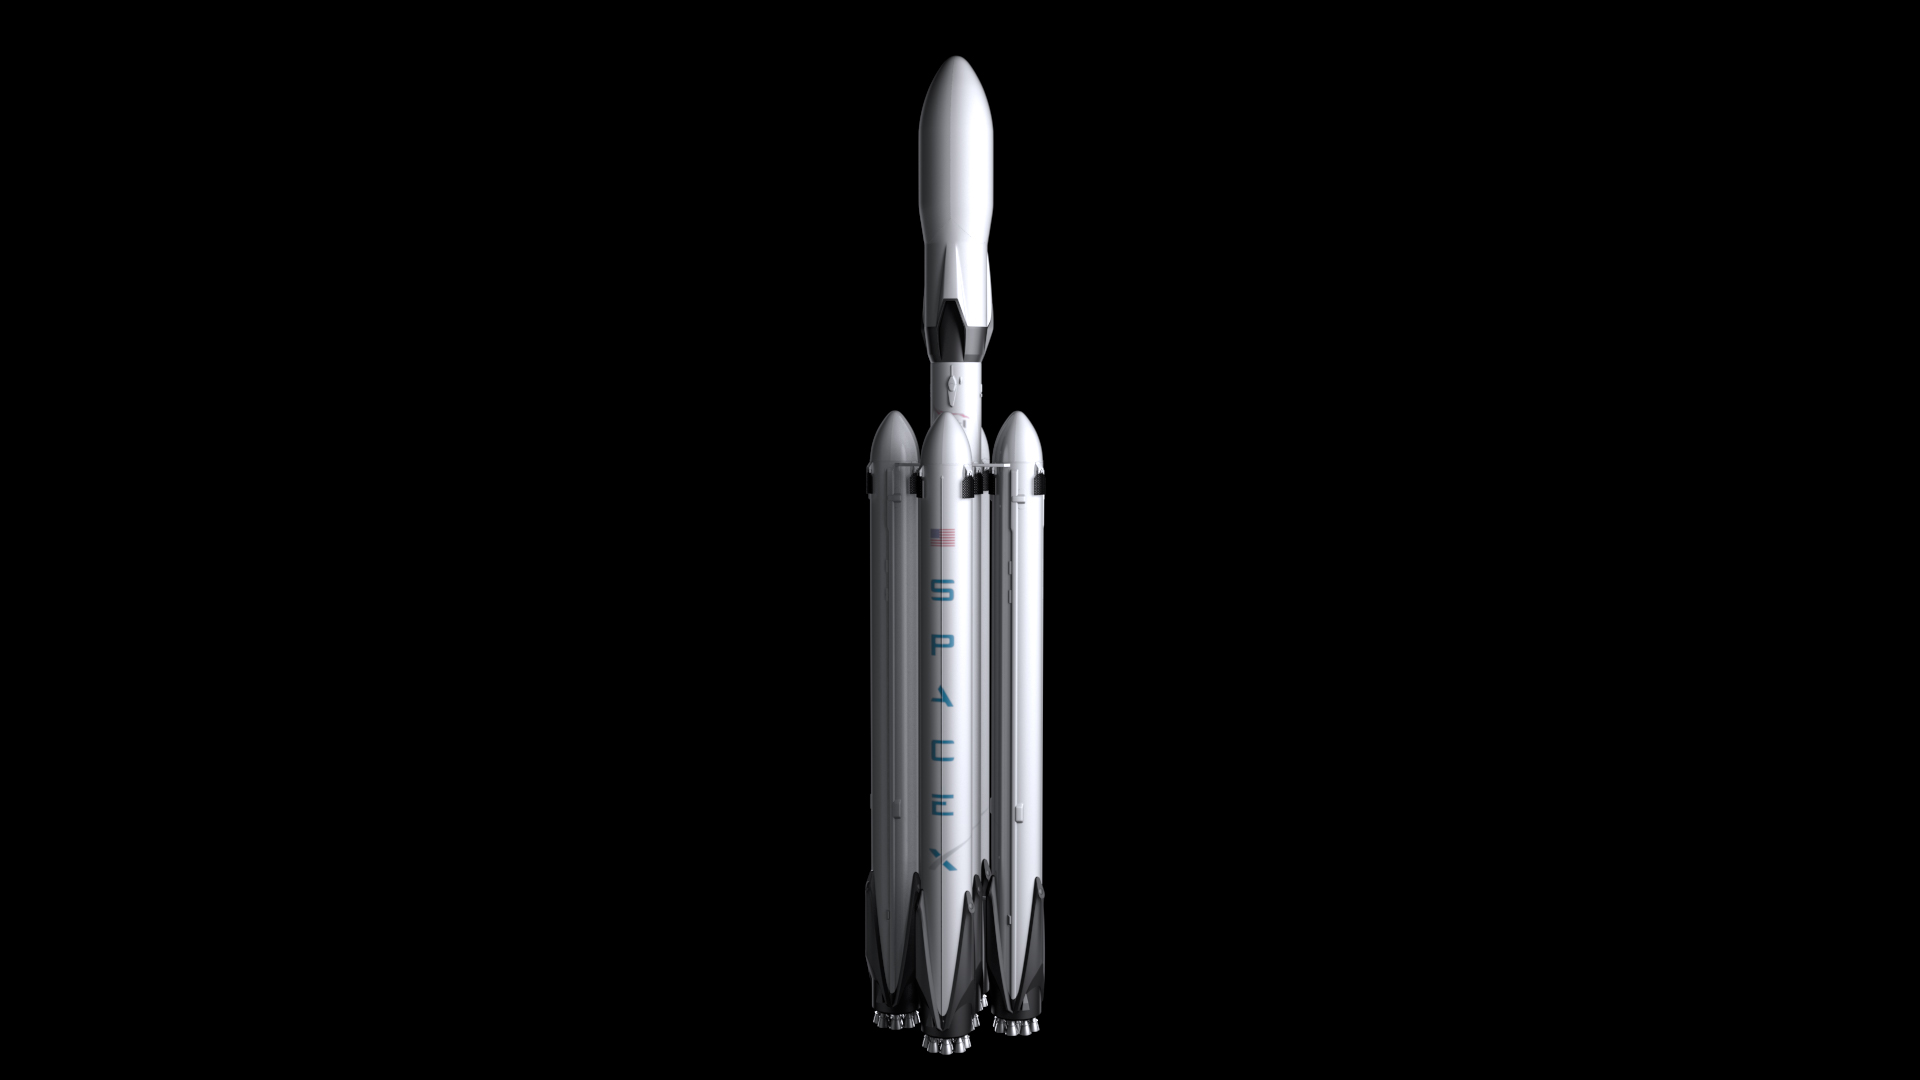 Falcon Super Heavy V1.2 Fully Reusable 3d model max fbx c4d lwo ma mb hrc xsi obj 277942